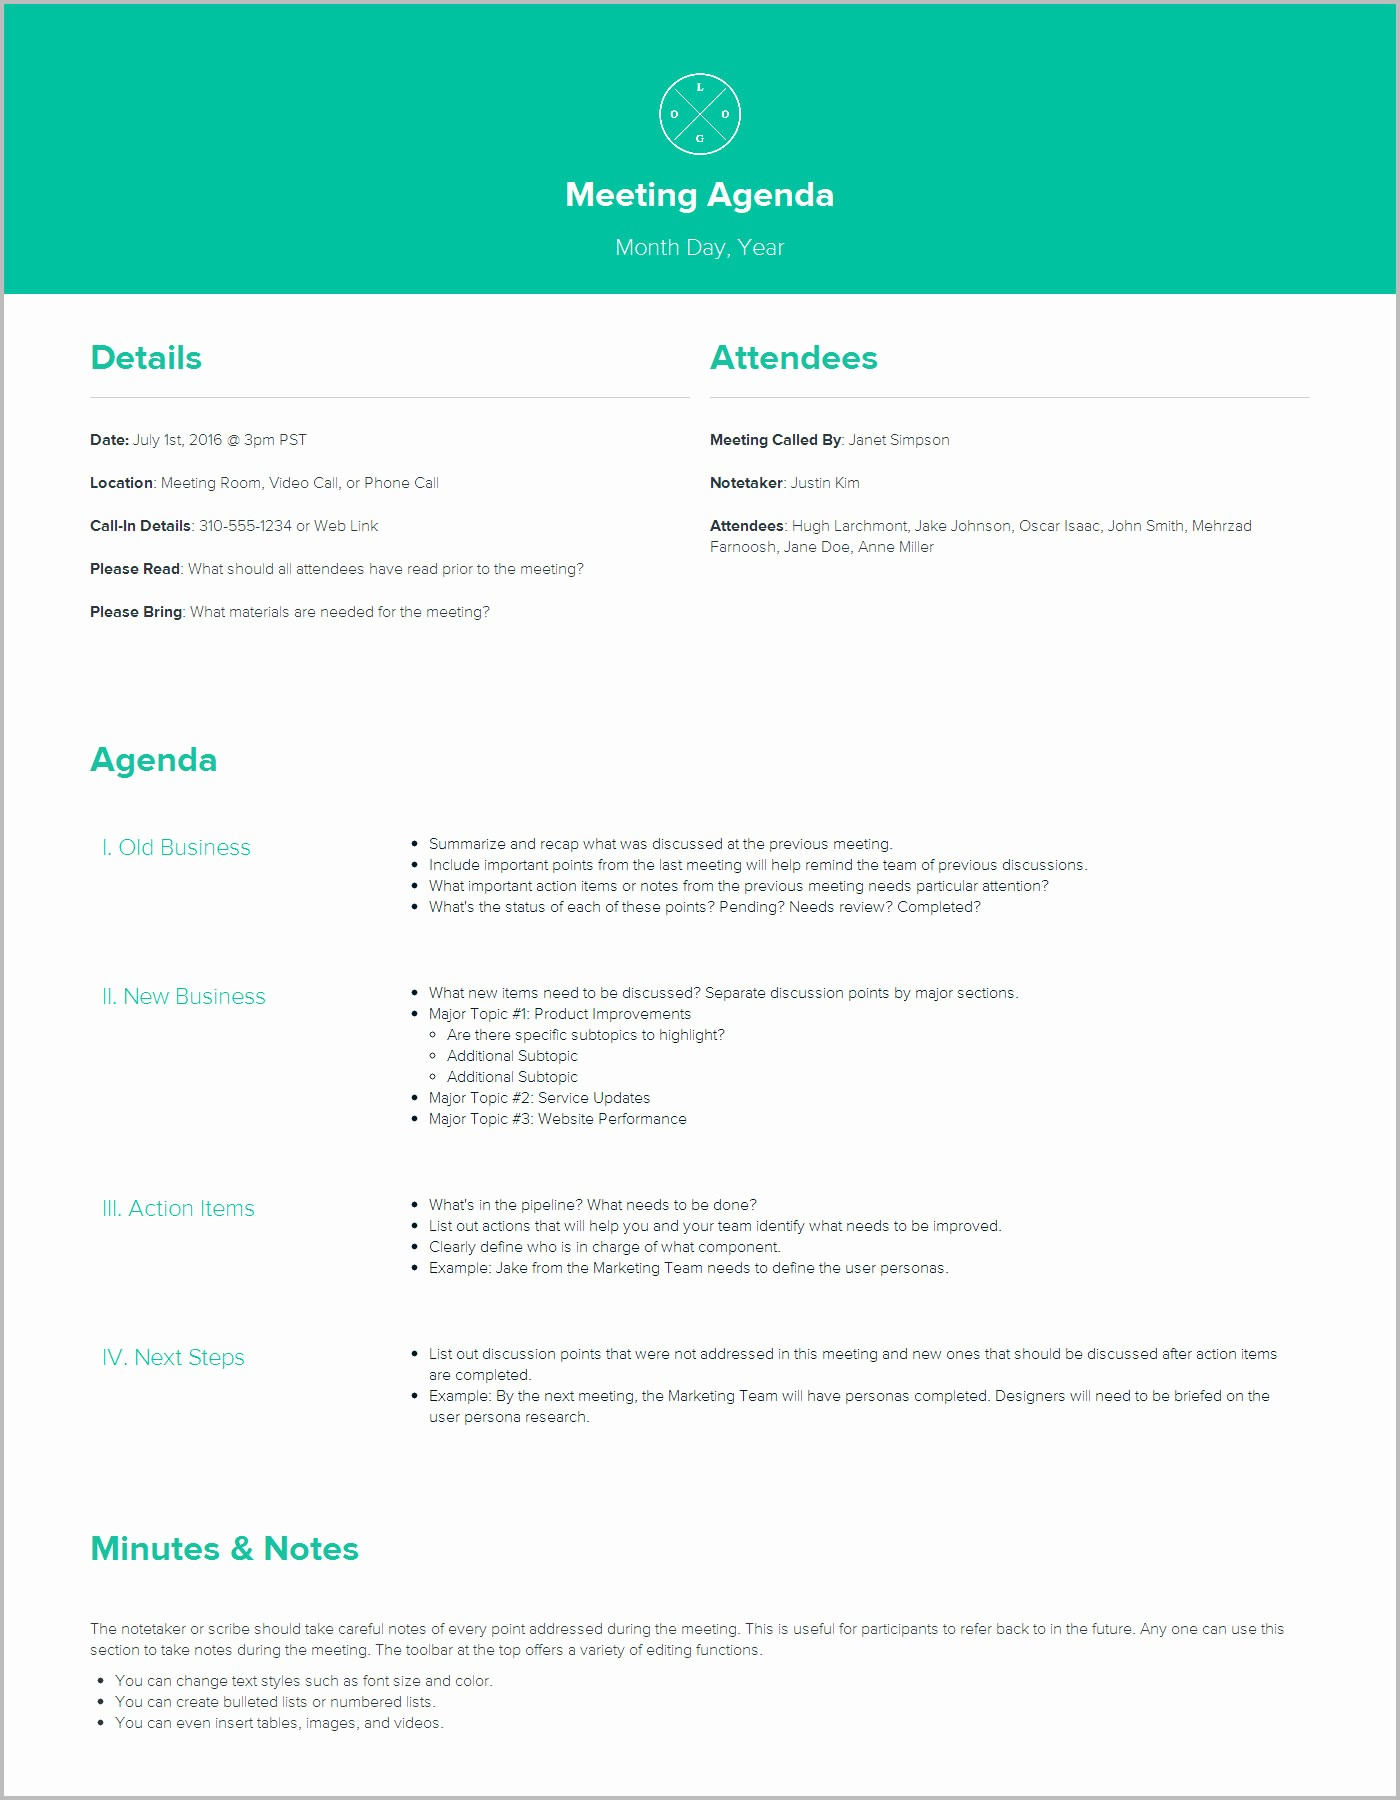 Sample Agenda for A Meeting New Meeting Agenda Template by Xtensio It S Free